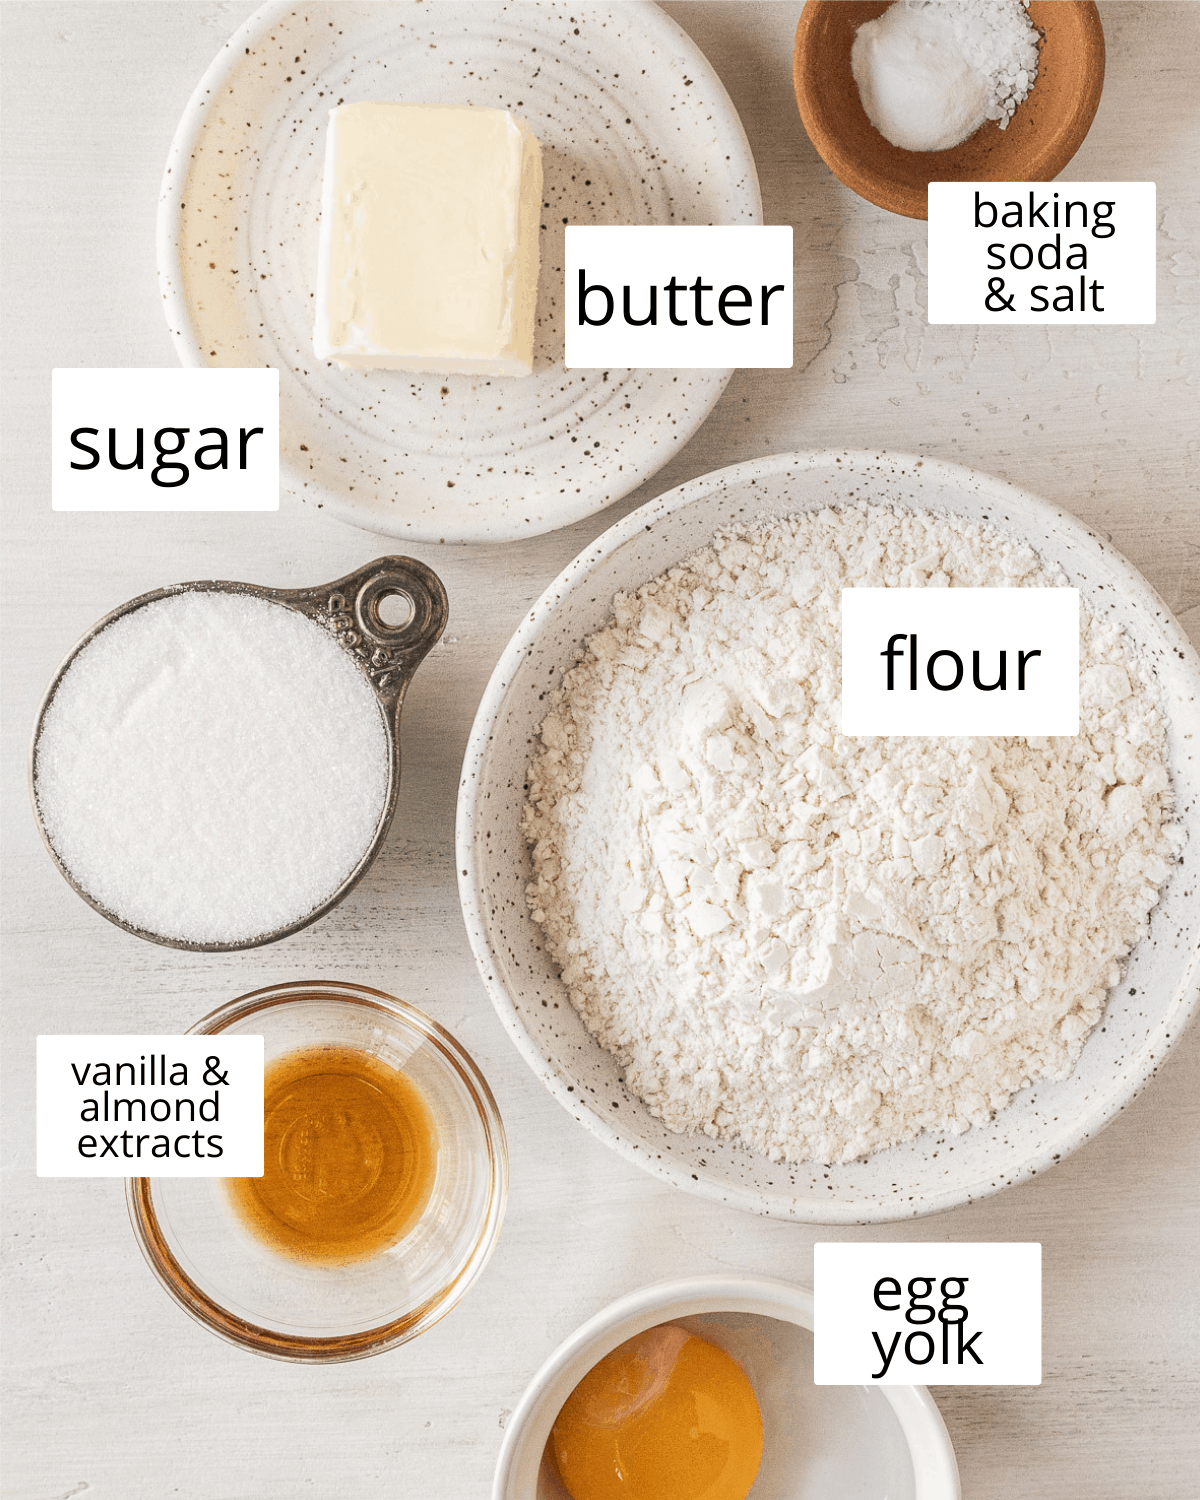 Ingredients needed to make small-batch sugar cookies